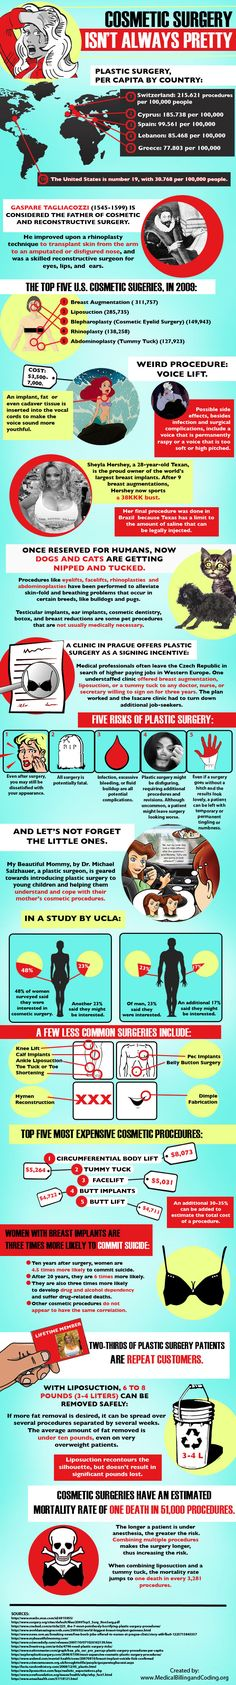 Amusing Plastic Surgery Information!!  We love this lighthearted take on cosmetic surgery world!